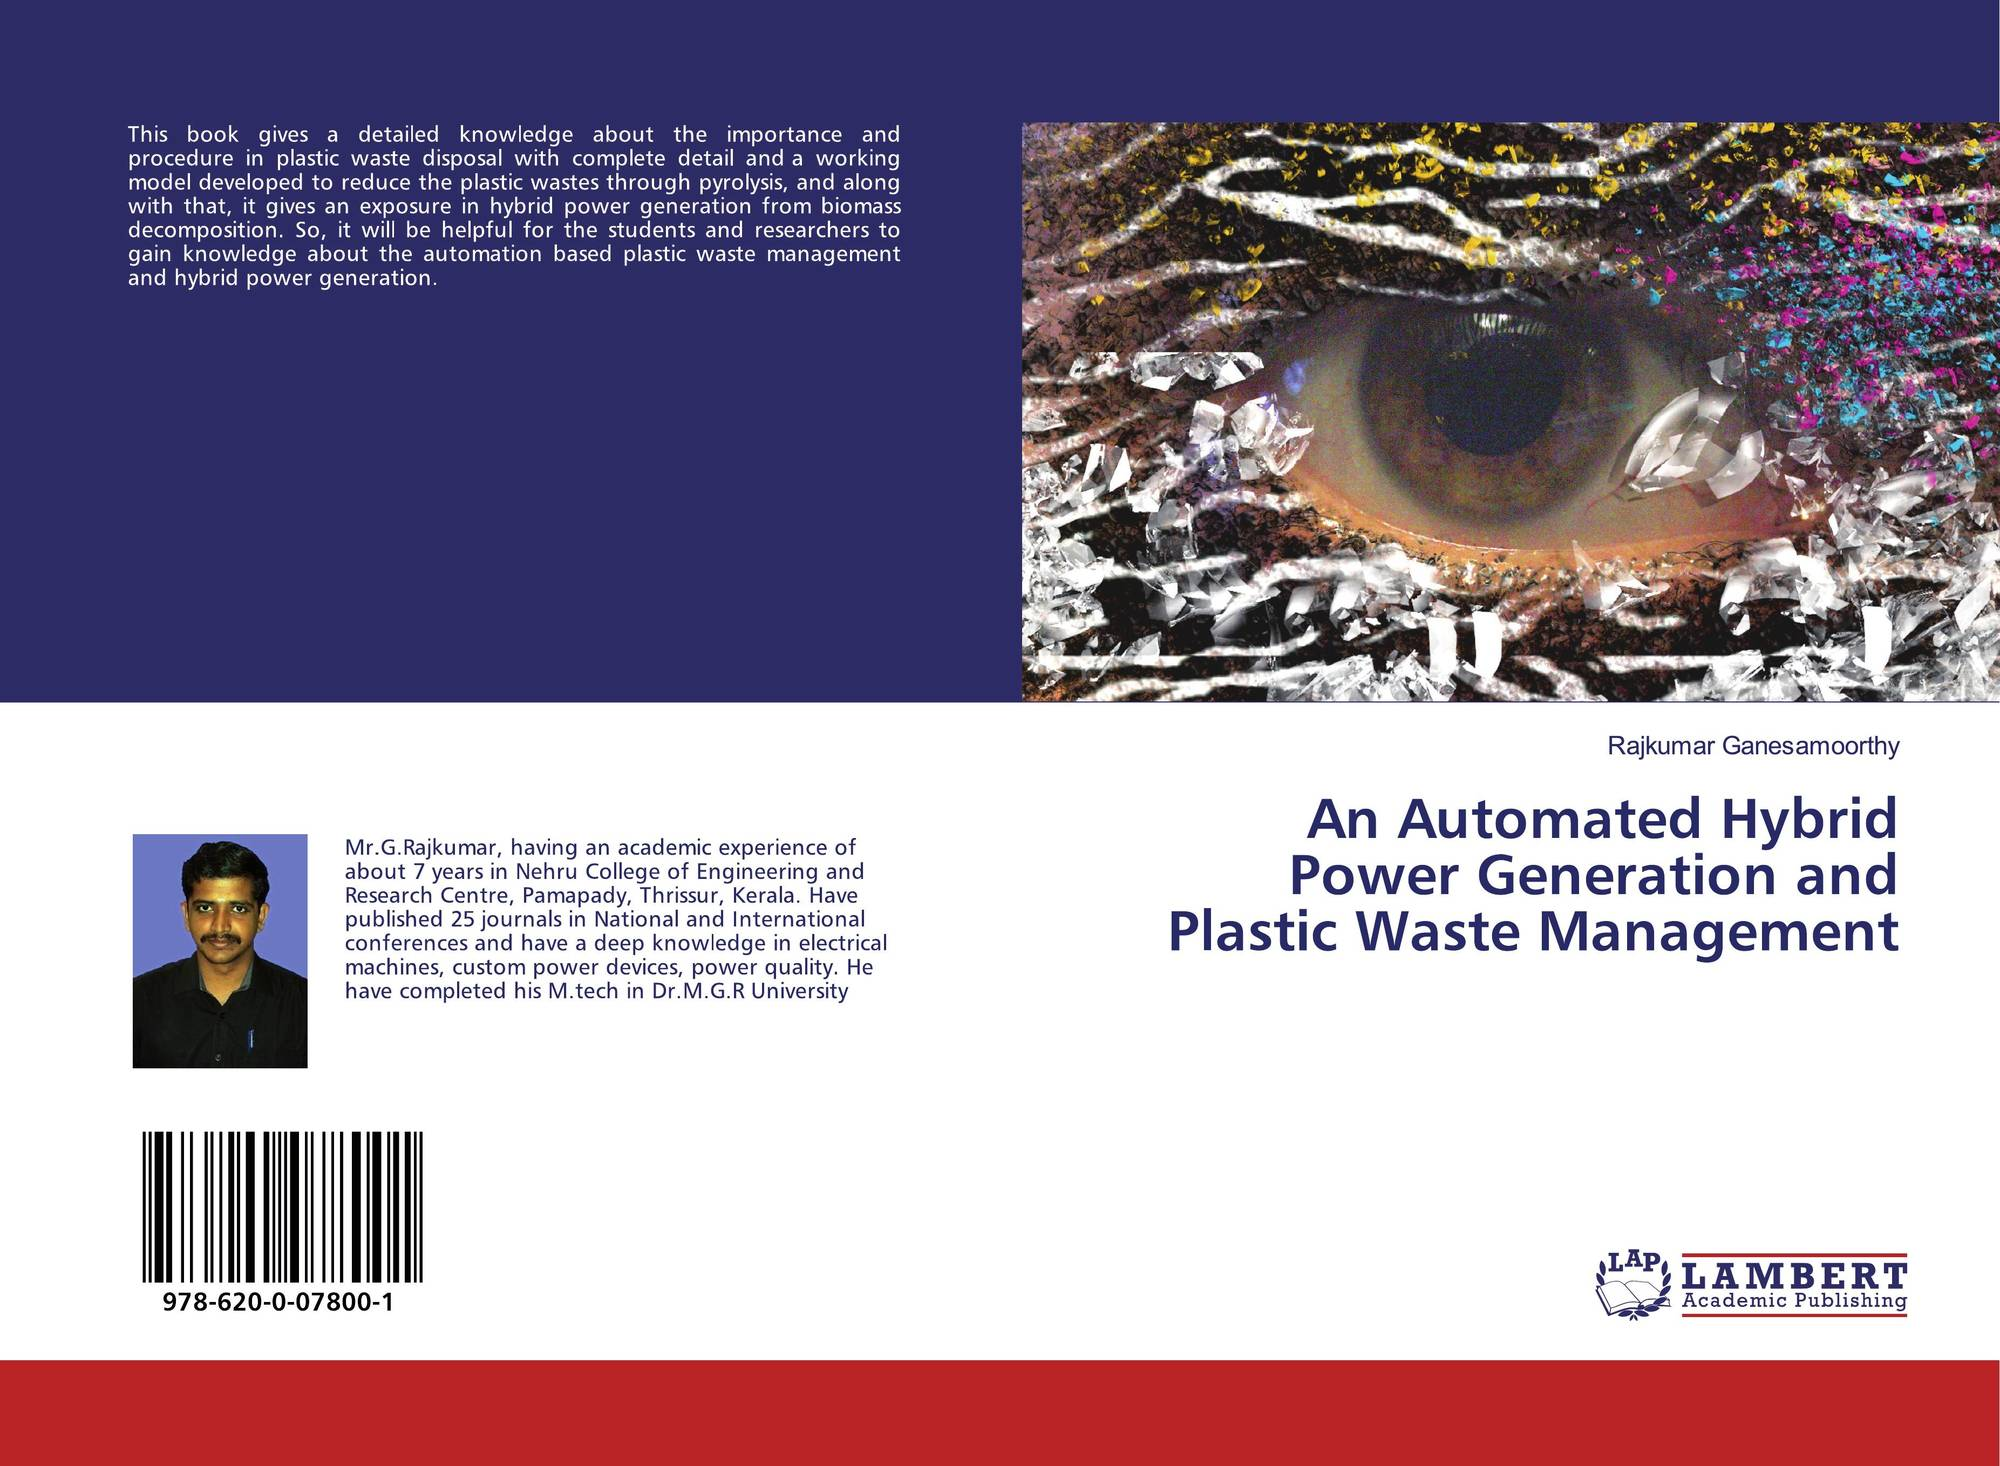 An Automated Hybrid Power Generation and Plastic Waste